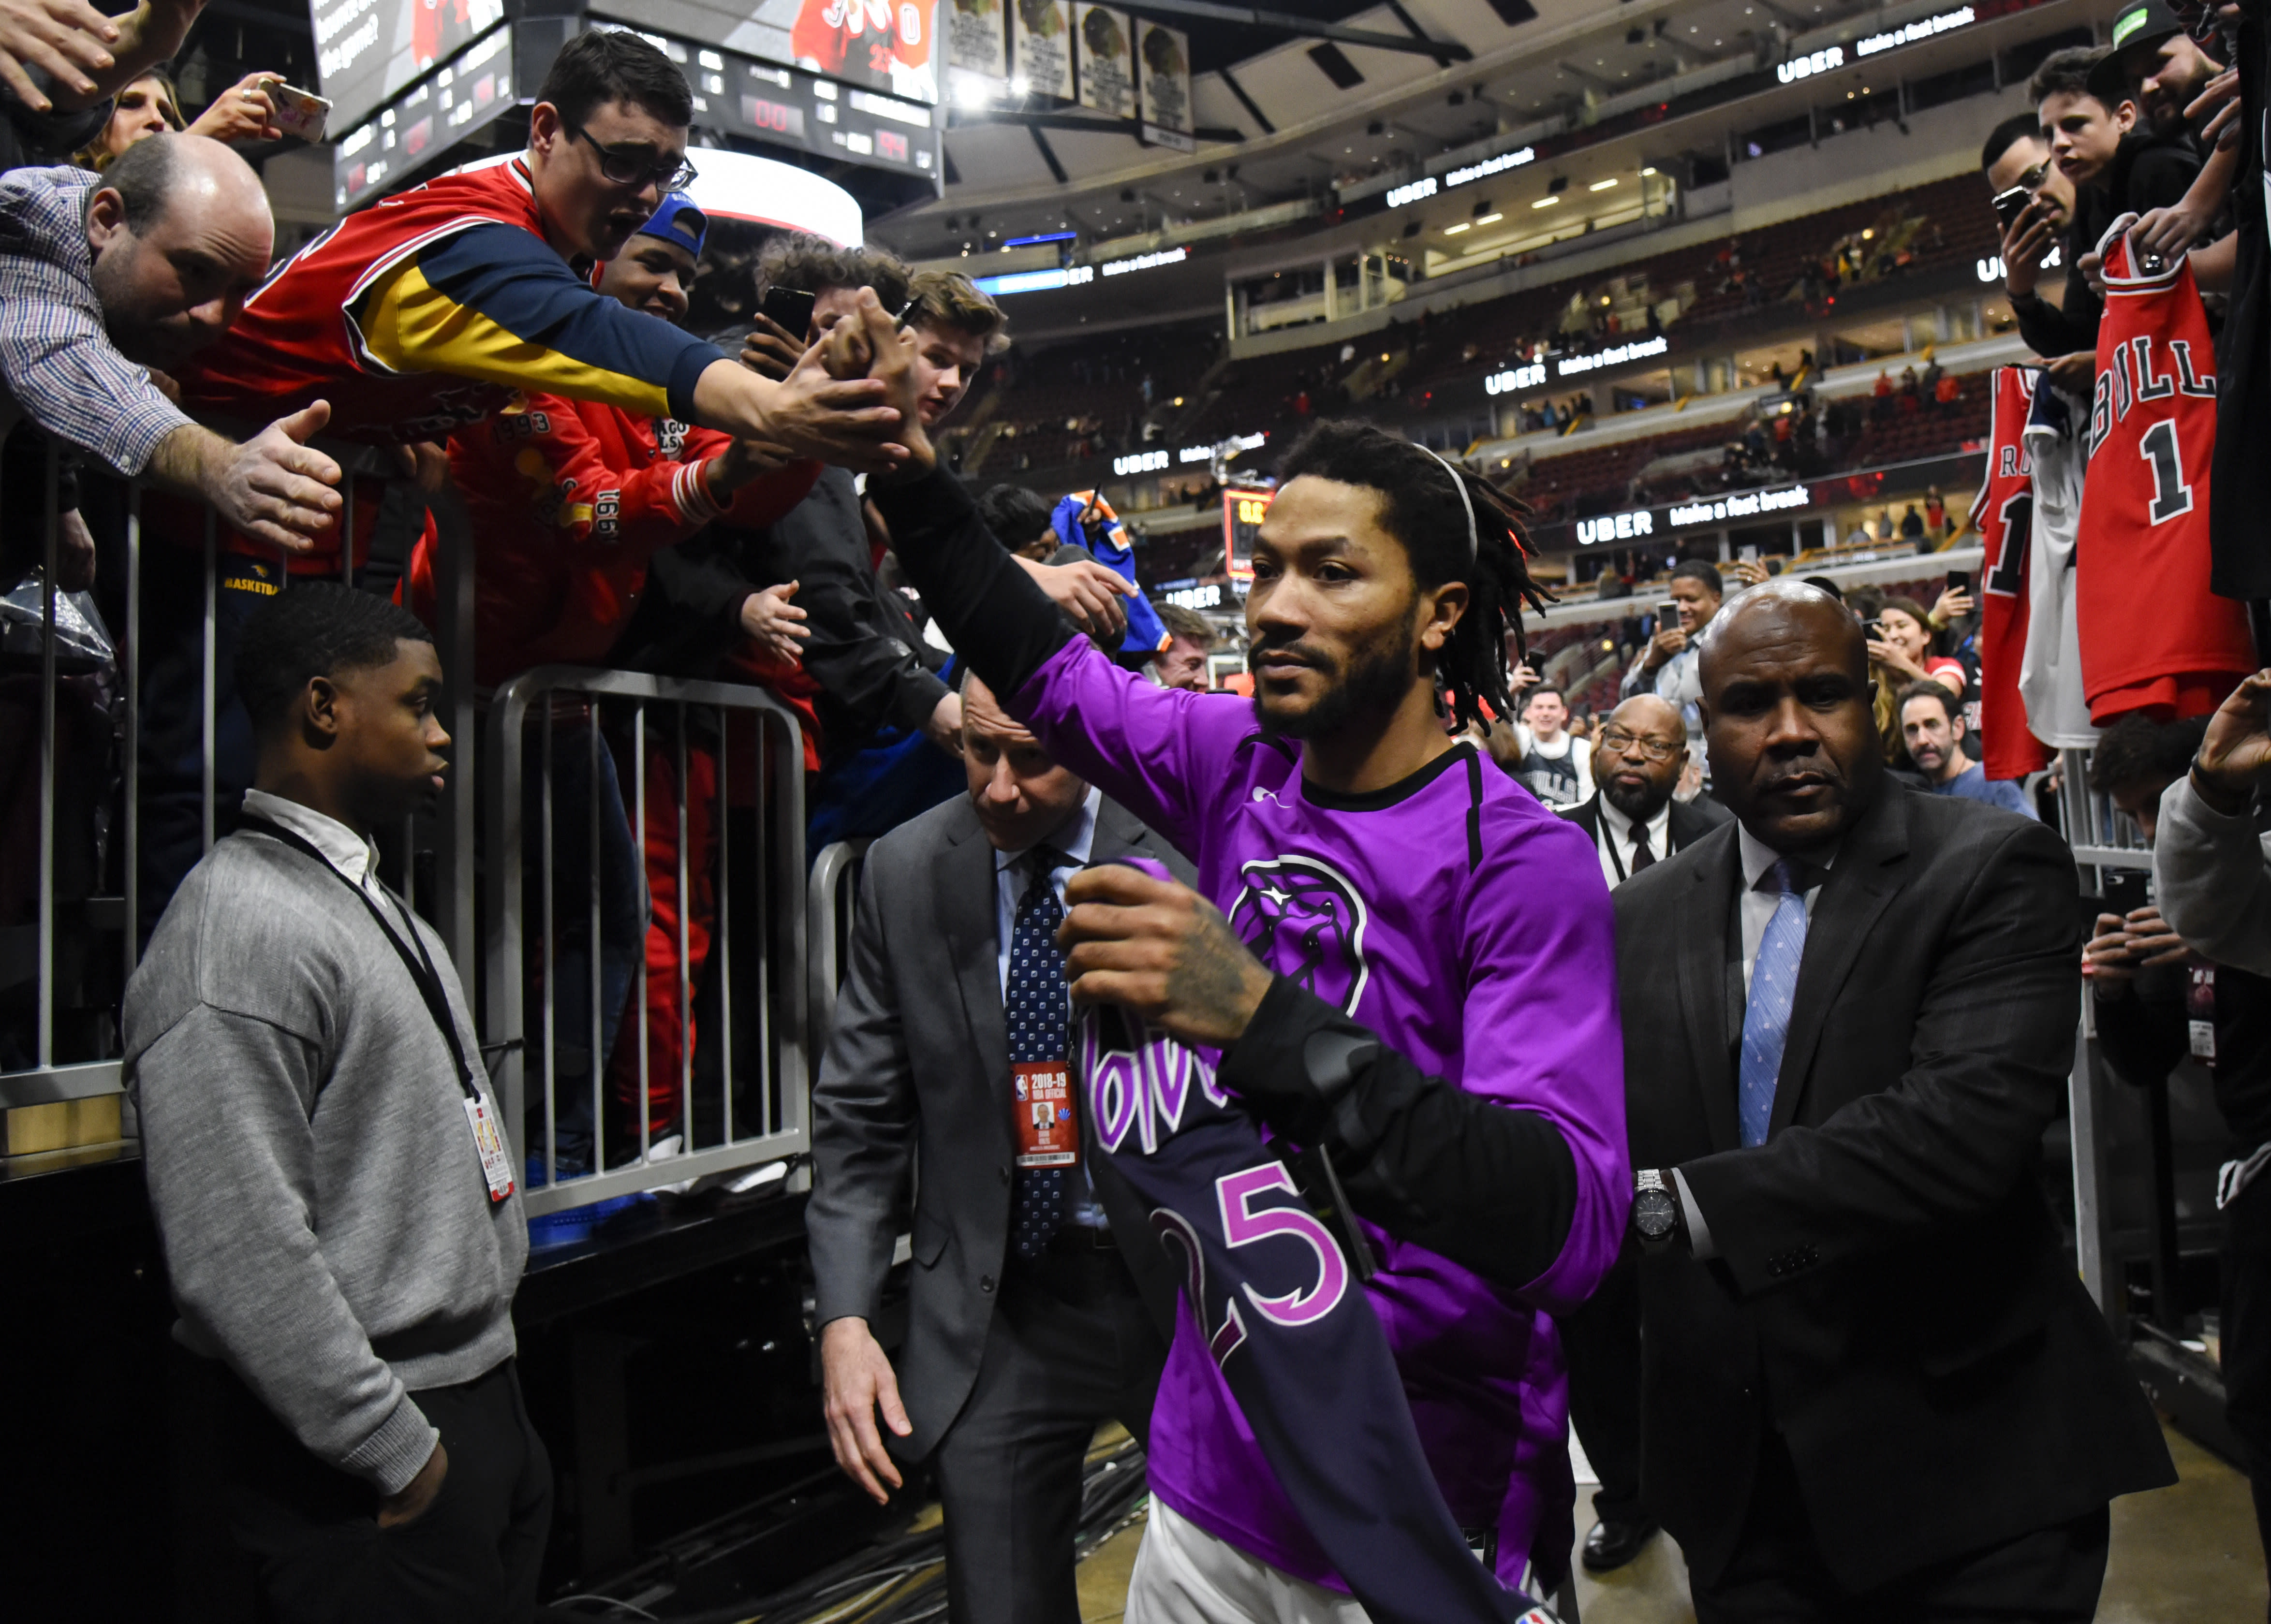 942e72ca40b5 Derrick Rose met with  MVP  chant in Chicago